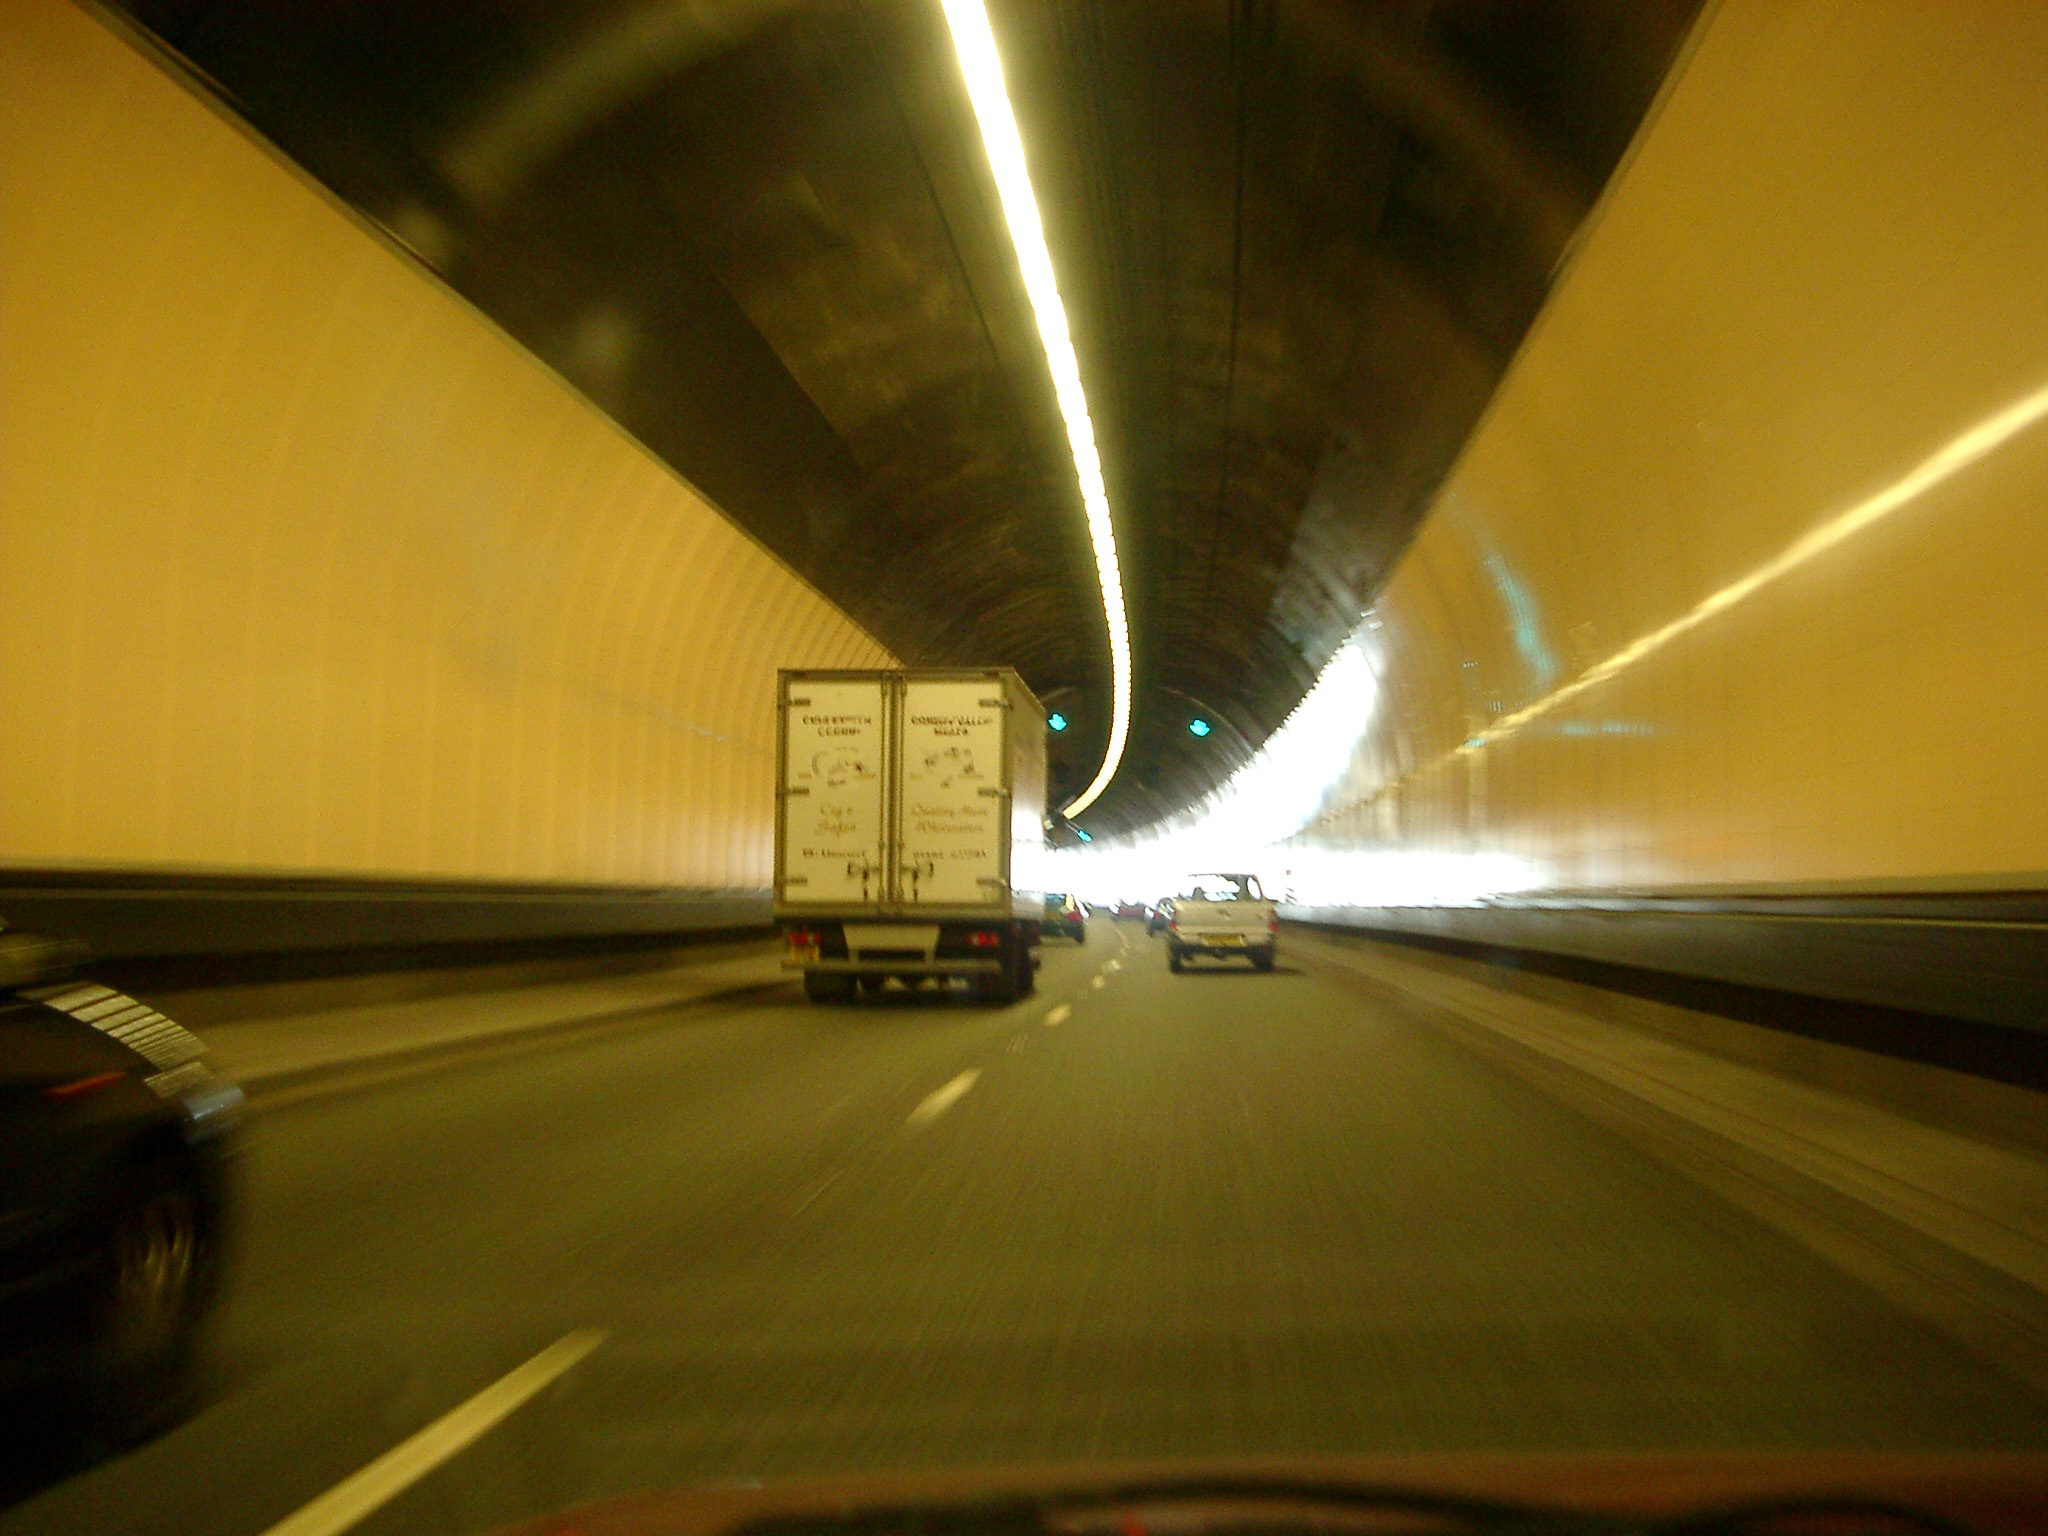 Interior of a road tunnel with traffic with cars and trucks passing around a curve in the road